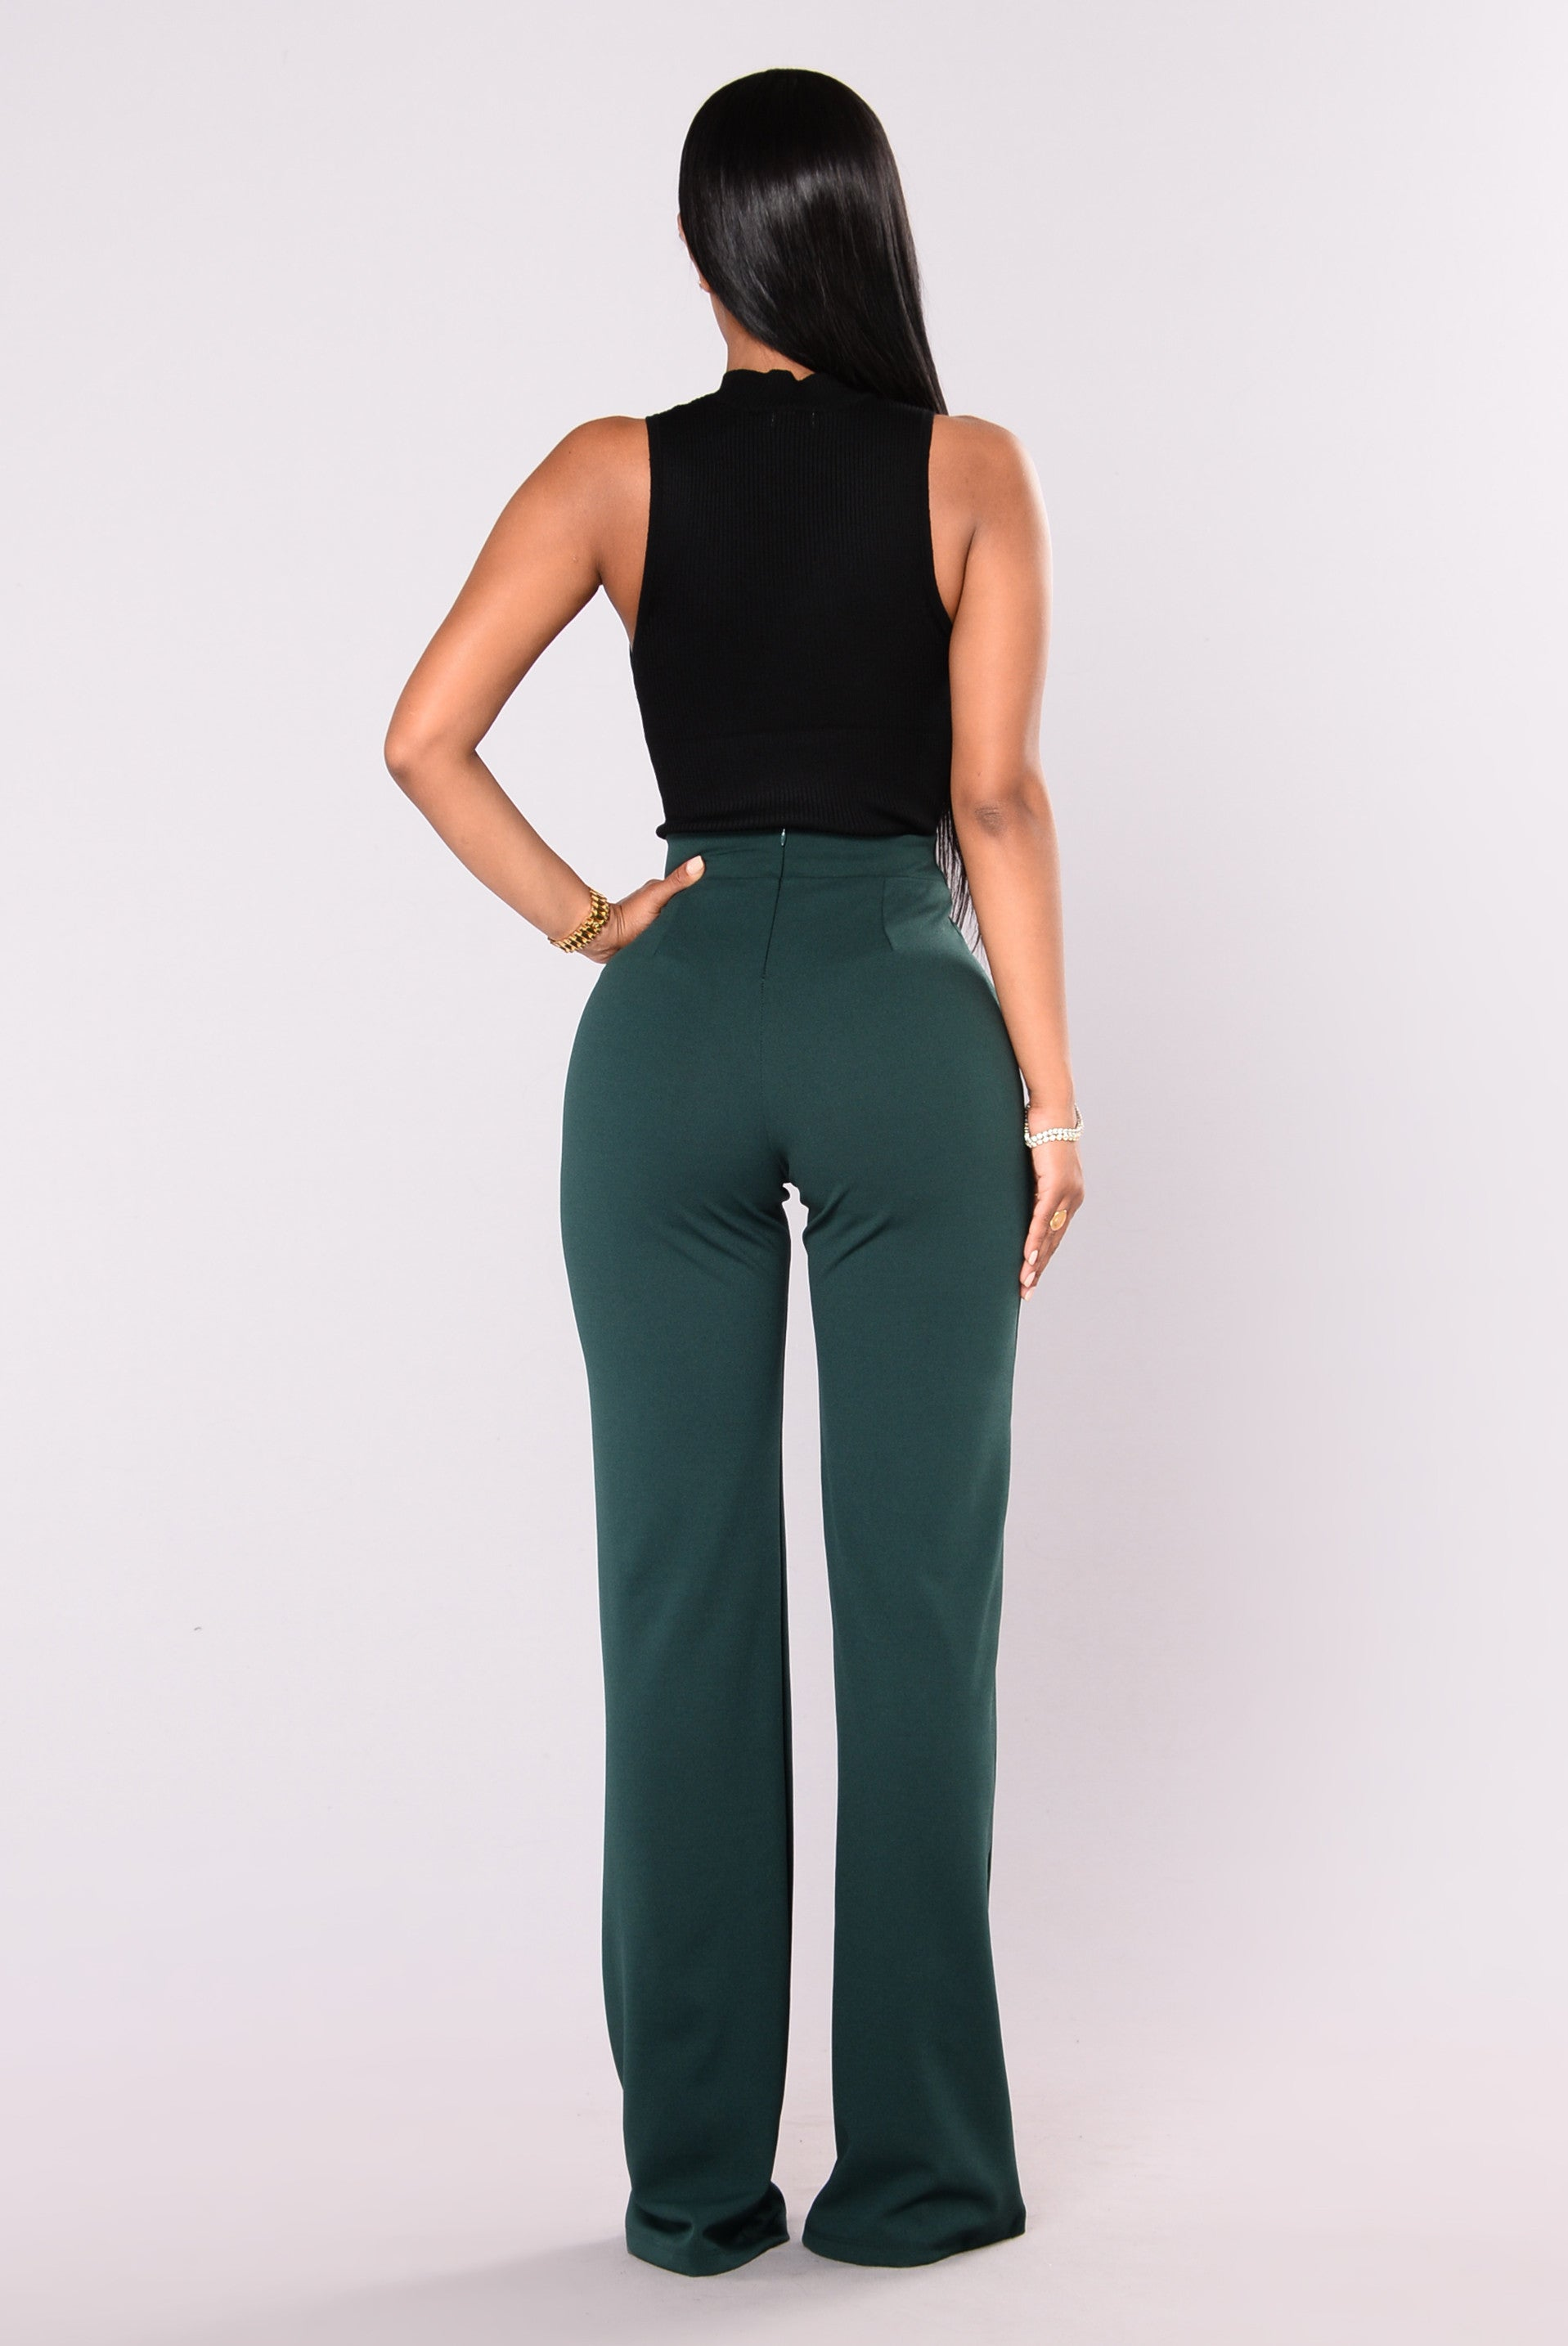 High waisted pants and dress pants for women are the perfect work pants and come in essential colors like black, white and red. For a dramatic look, grab a pair of palazzo pants, wide leg pants or slit pants in a solid or print.